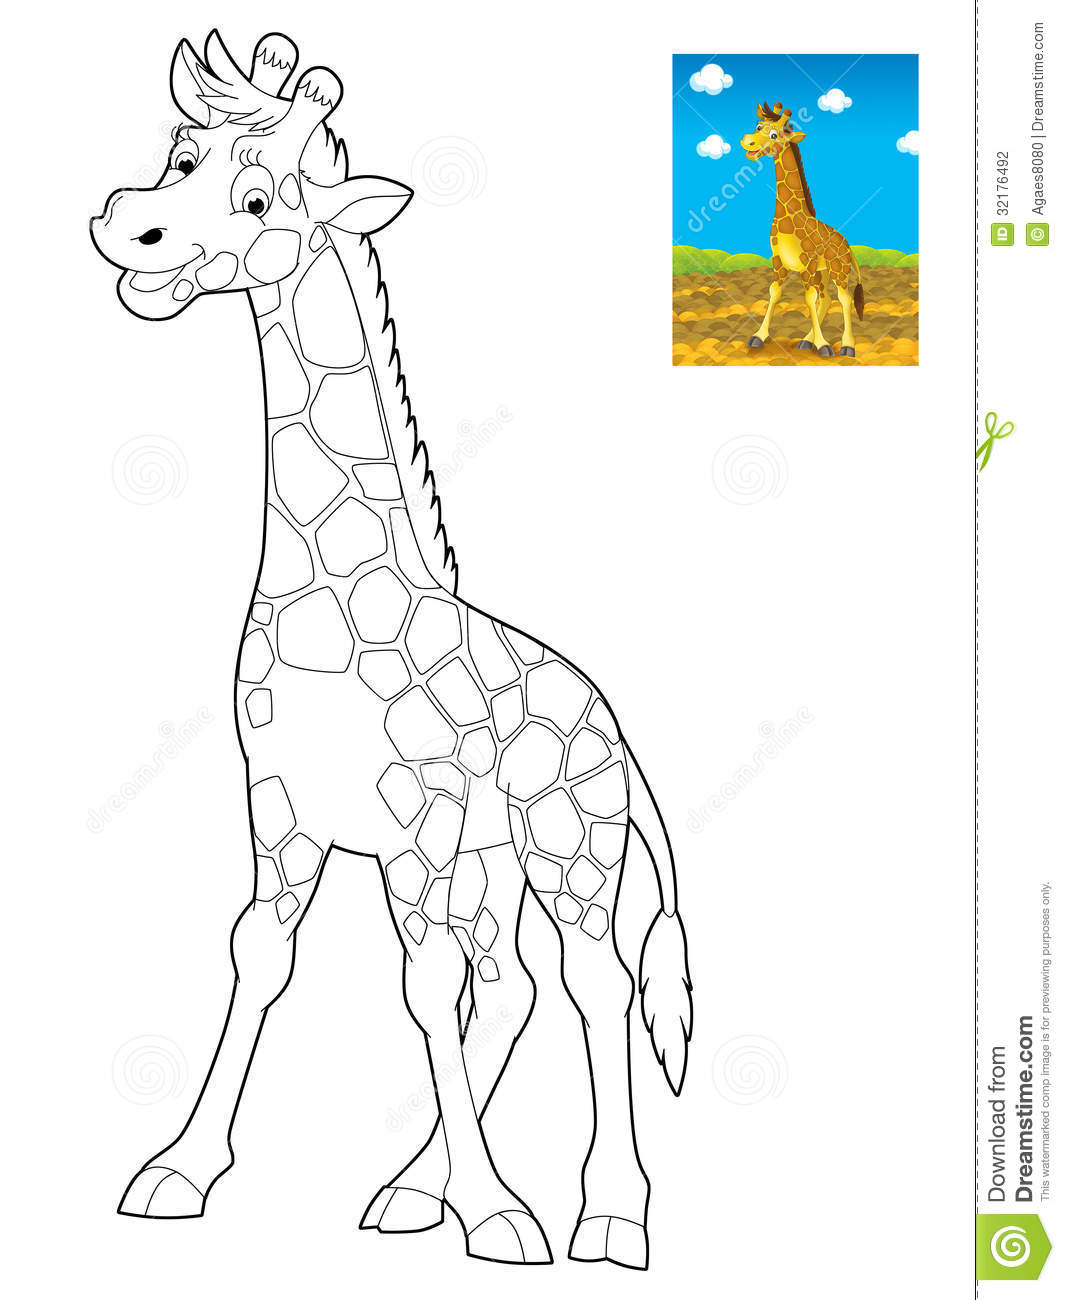 Safari people coloring pages